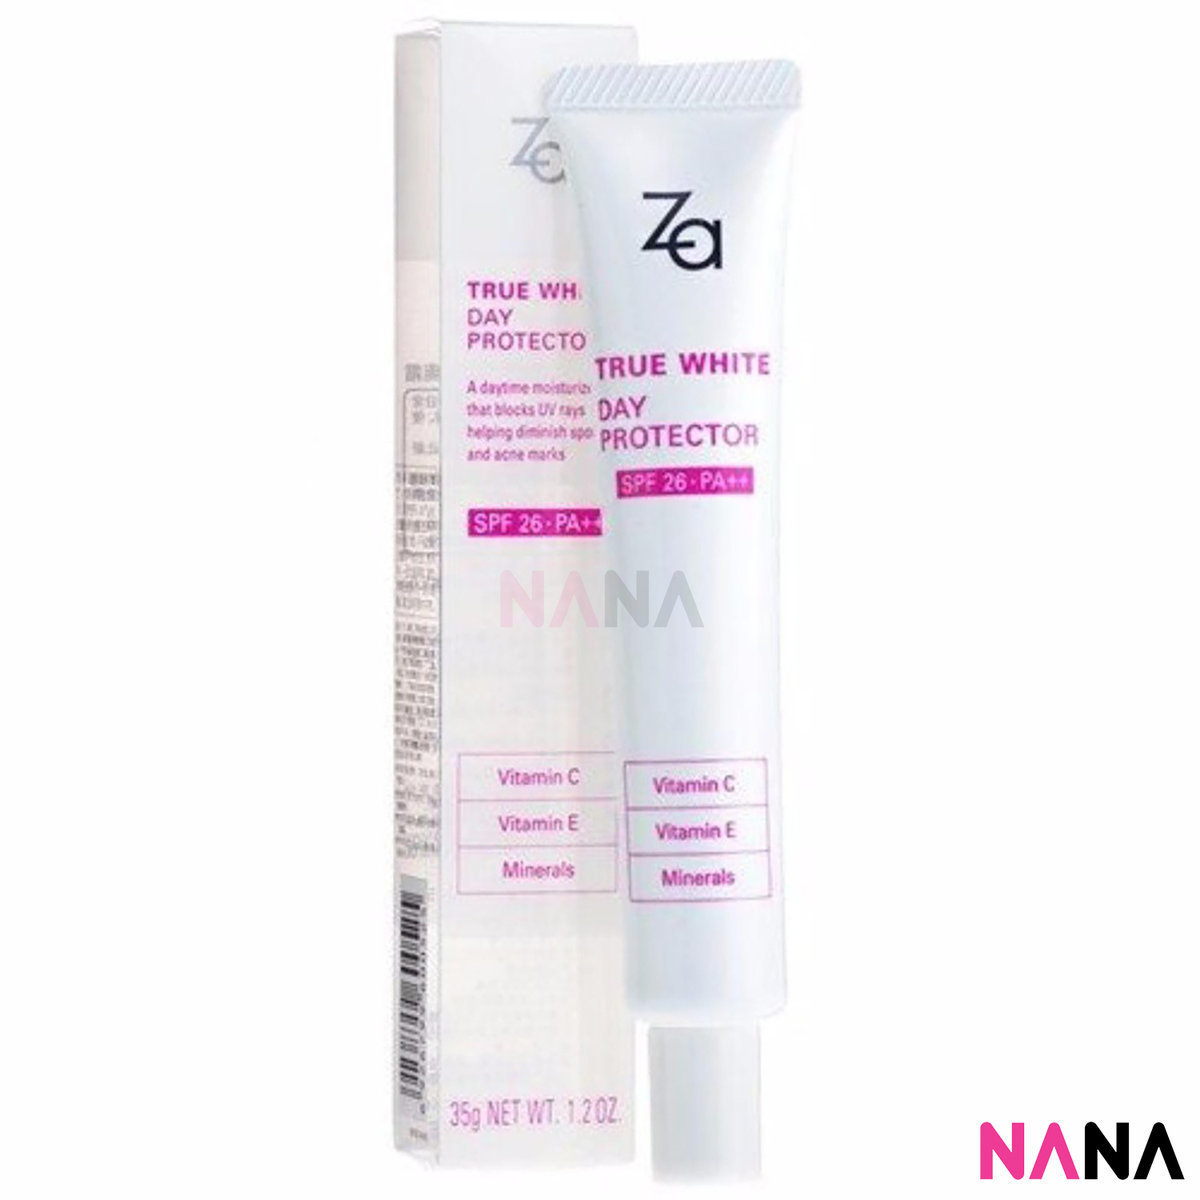 True White Day Protection SPF26+ PA++